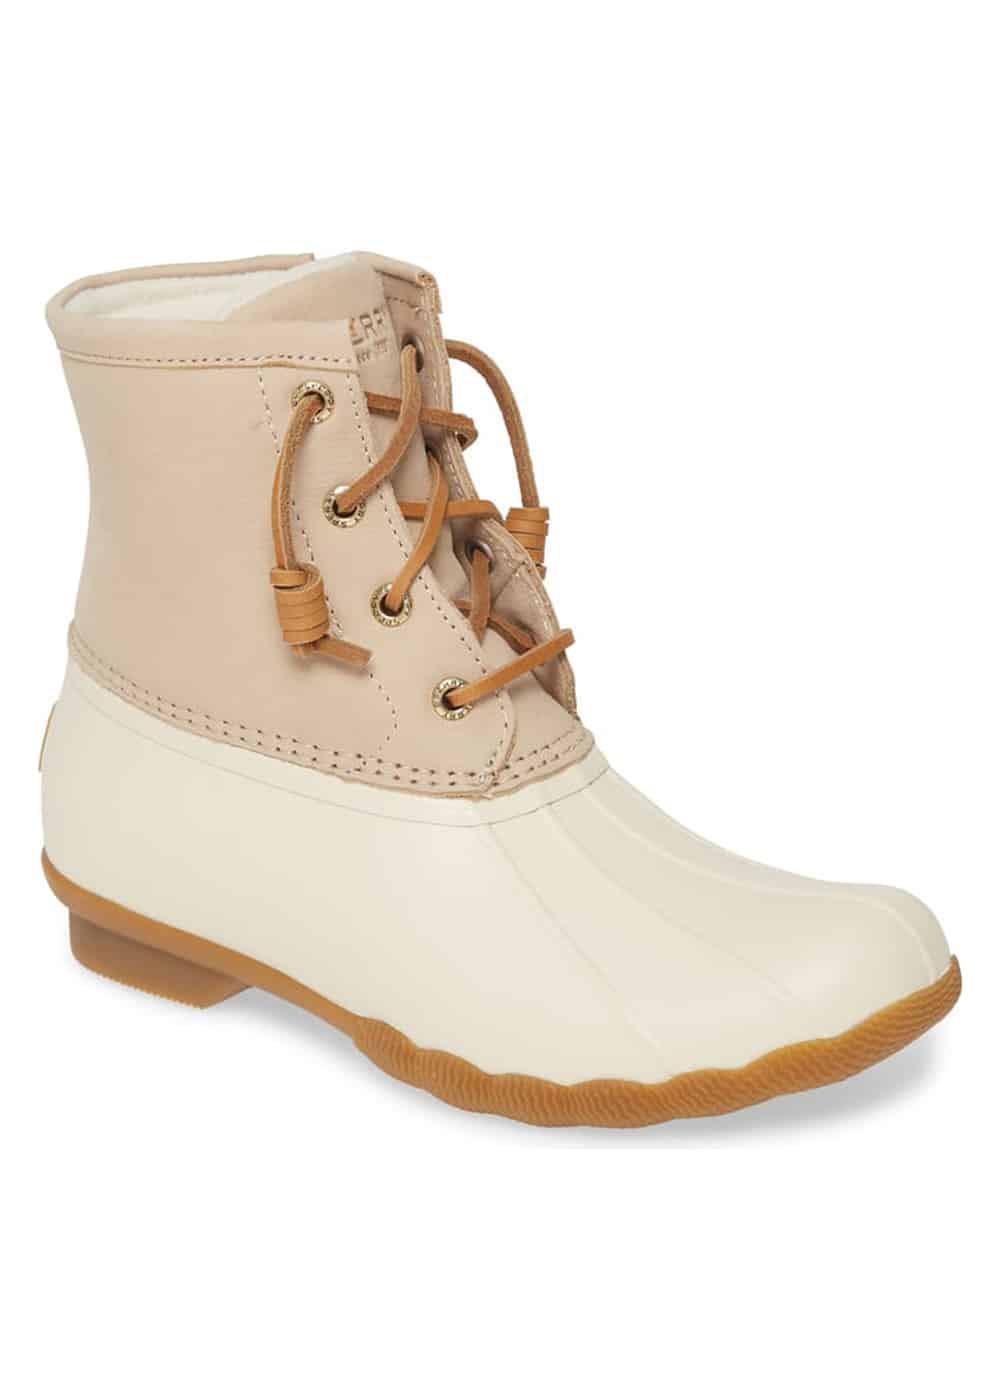 sperry rain boots cowgirl magazine